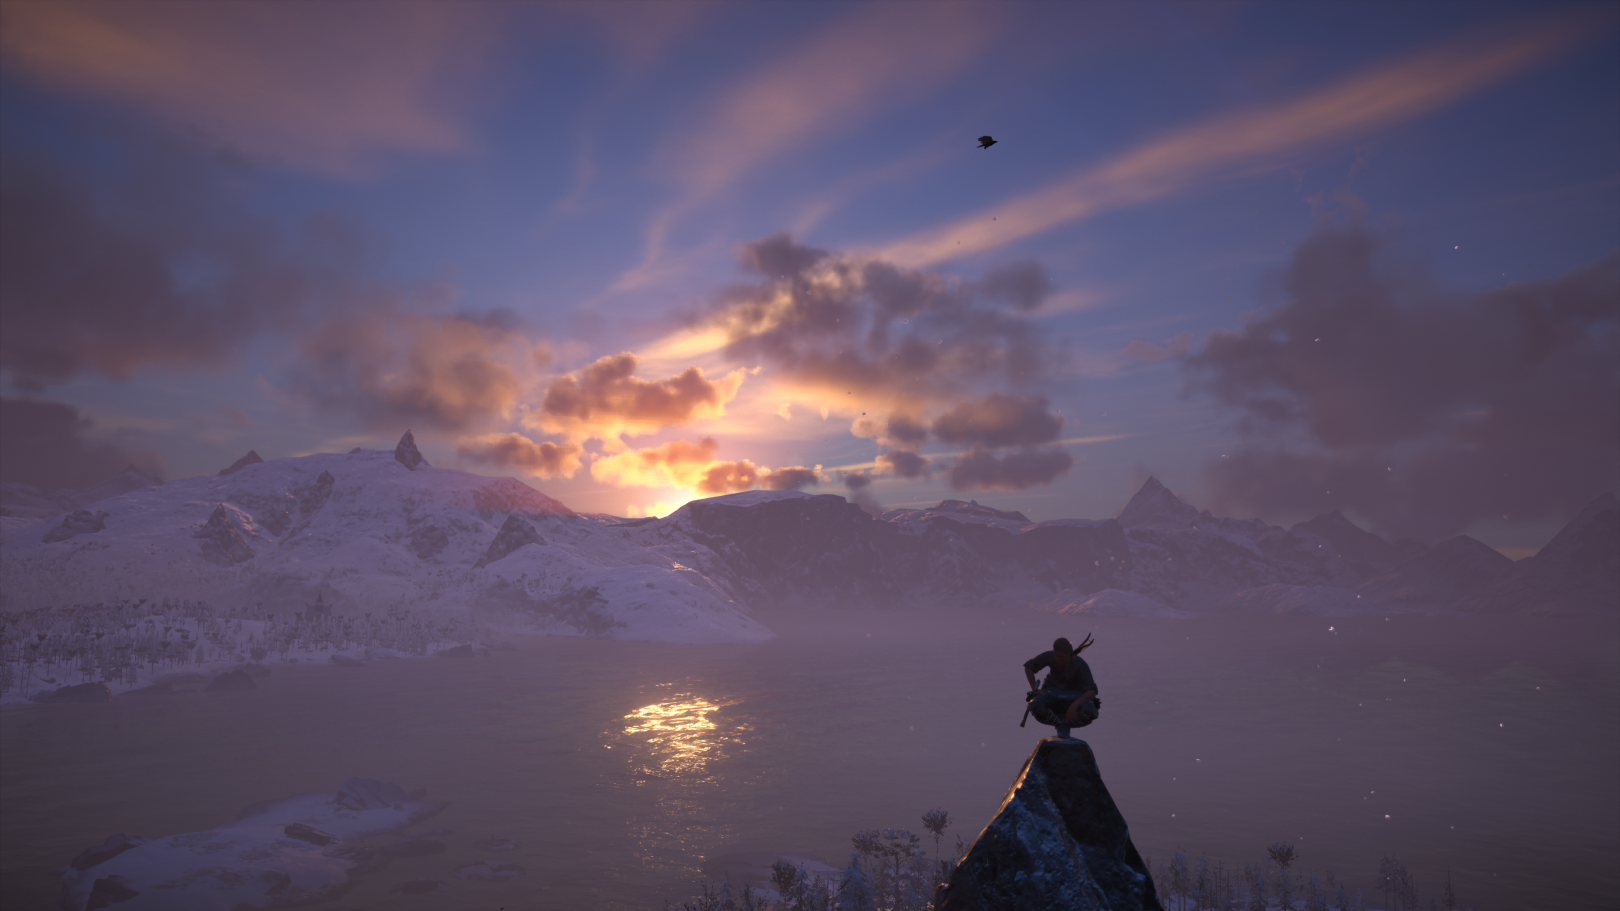 Sunset view from a mountain top in Assassin's Creed Valhalla